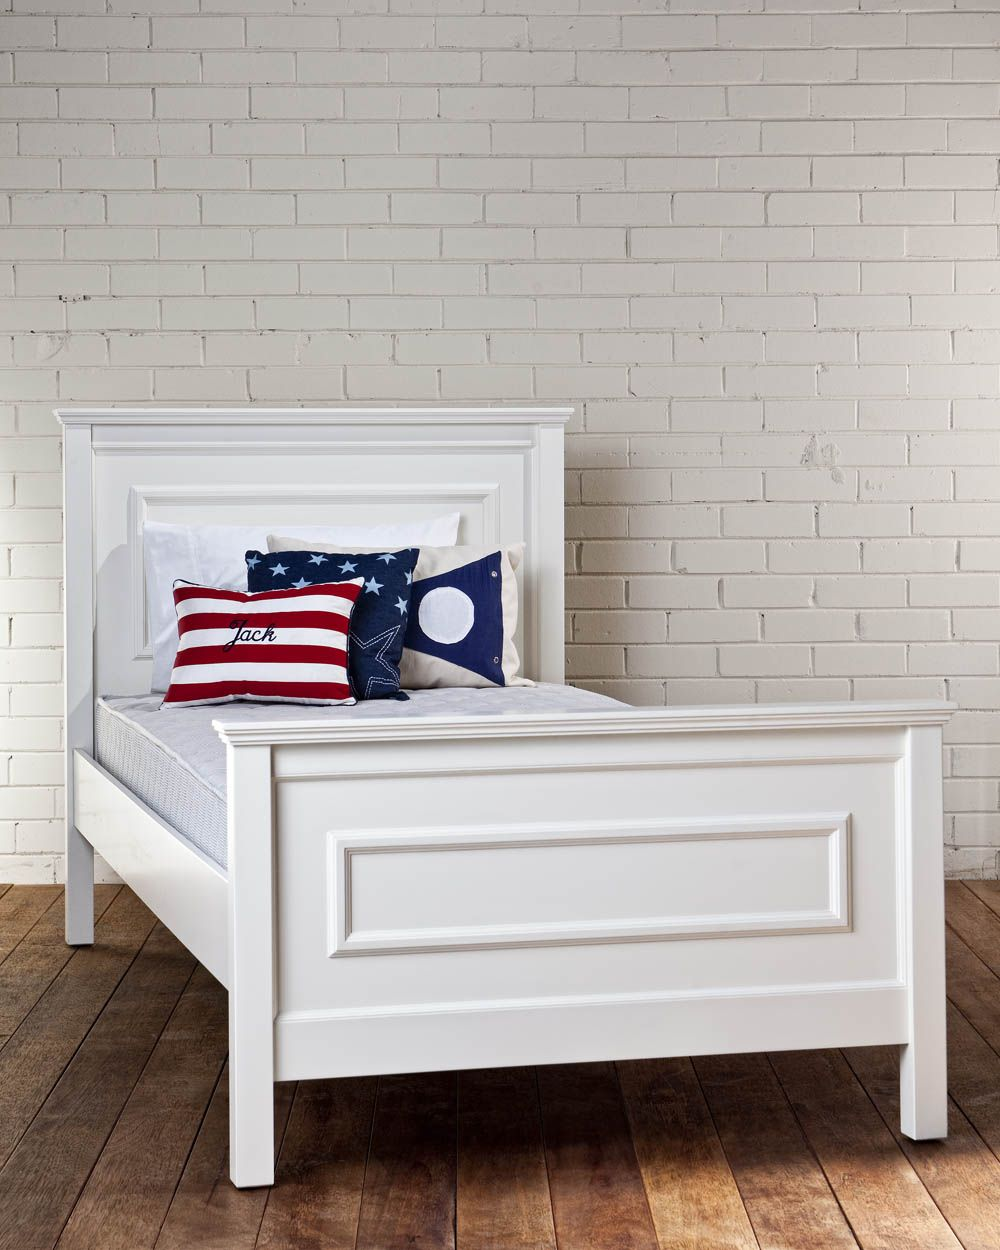 14 Lovable And Cute Kids Bed Designs You Must Have Exquisite Washington King Single Bed With White Bed Frame And White Brick Wall Also Wooden Floor And Cozy P